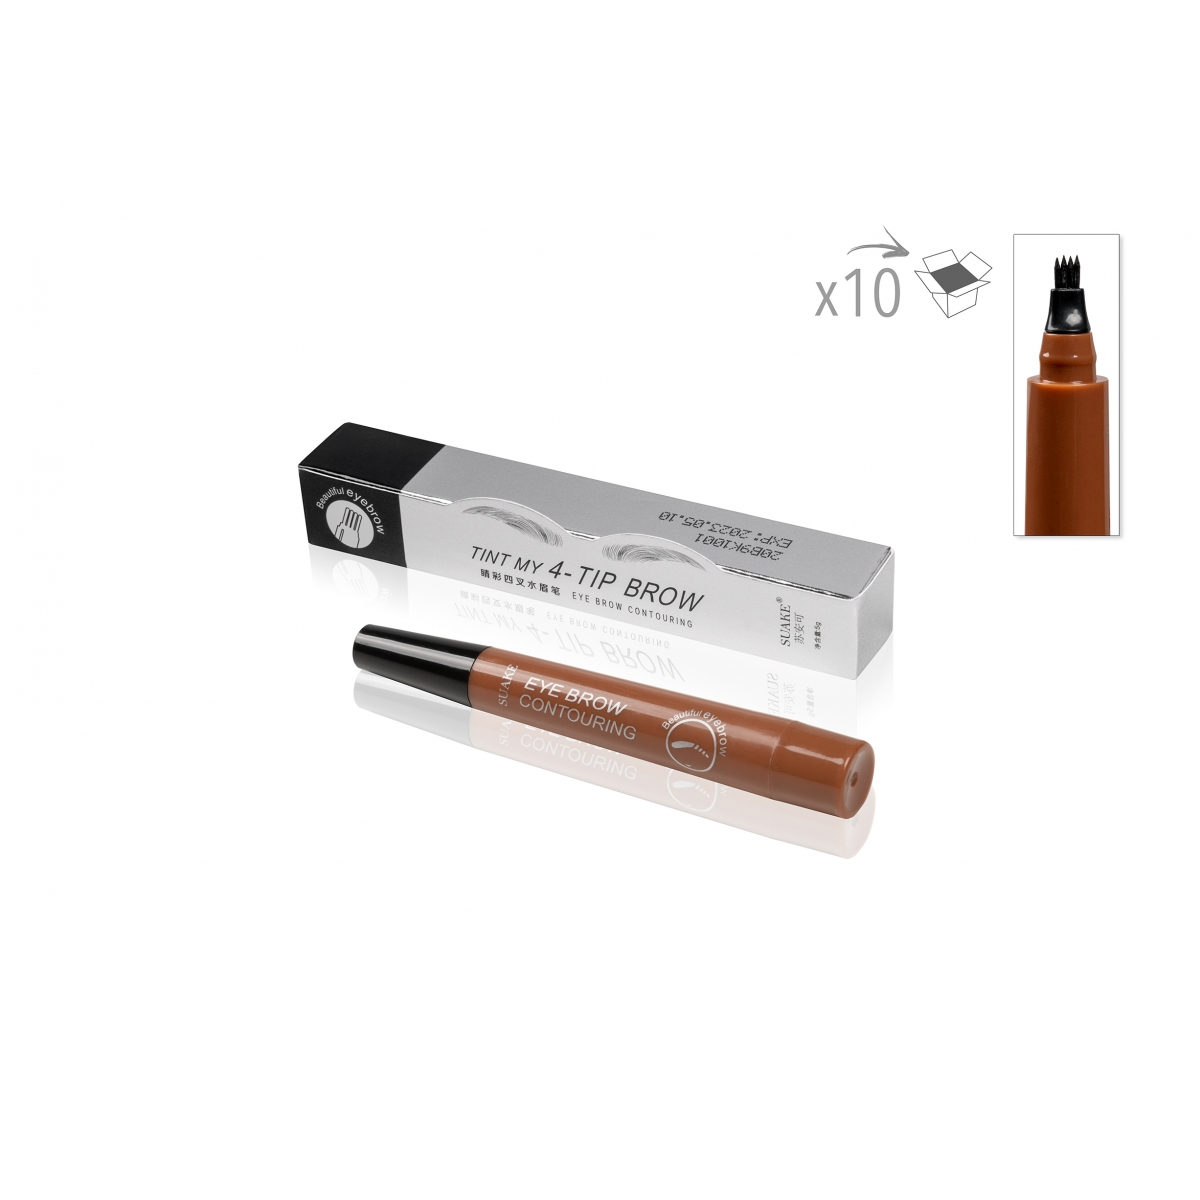 SOIN DU REGARD - MAUD COSMETICS - STYLO MICROBLADING SOURCILS A FOURCHE IMPERMEABLE 4 POINTES MARRON CLAIR (x10)